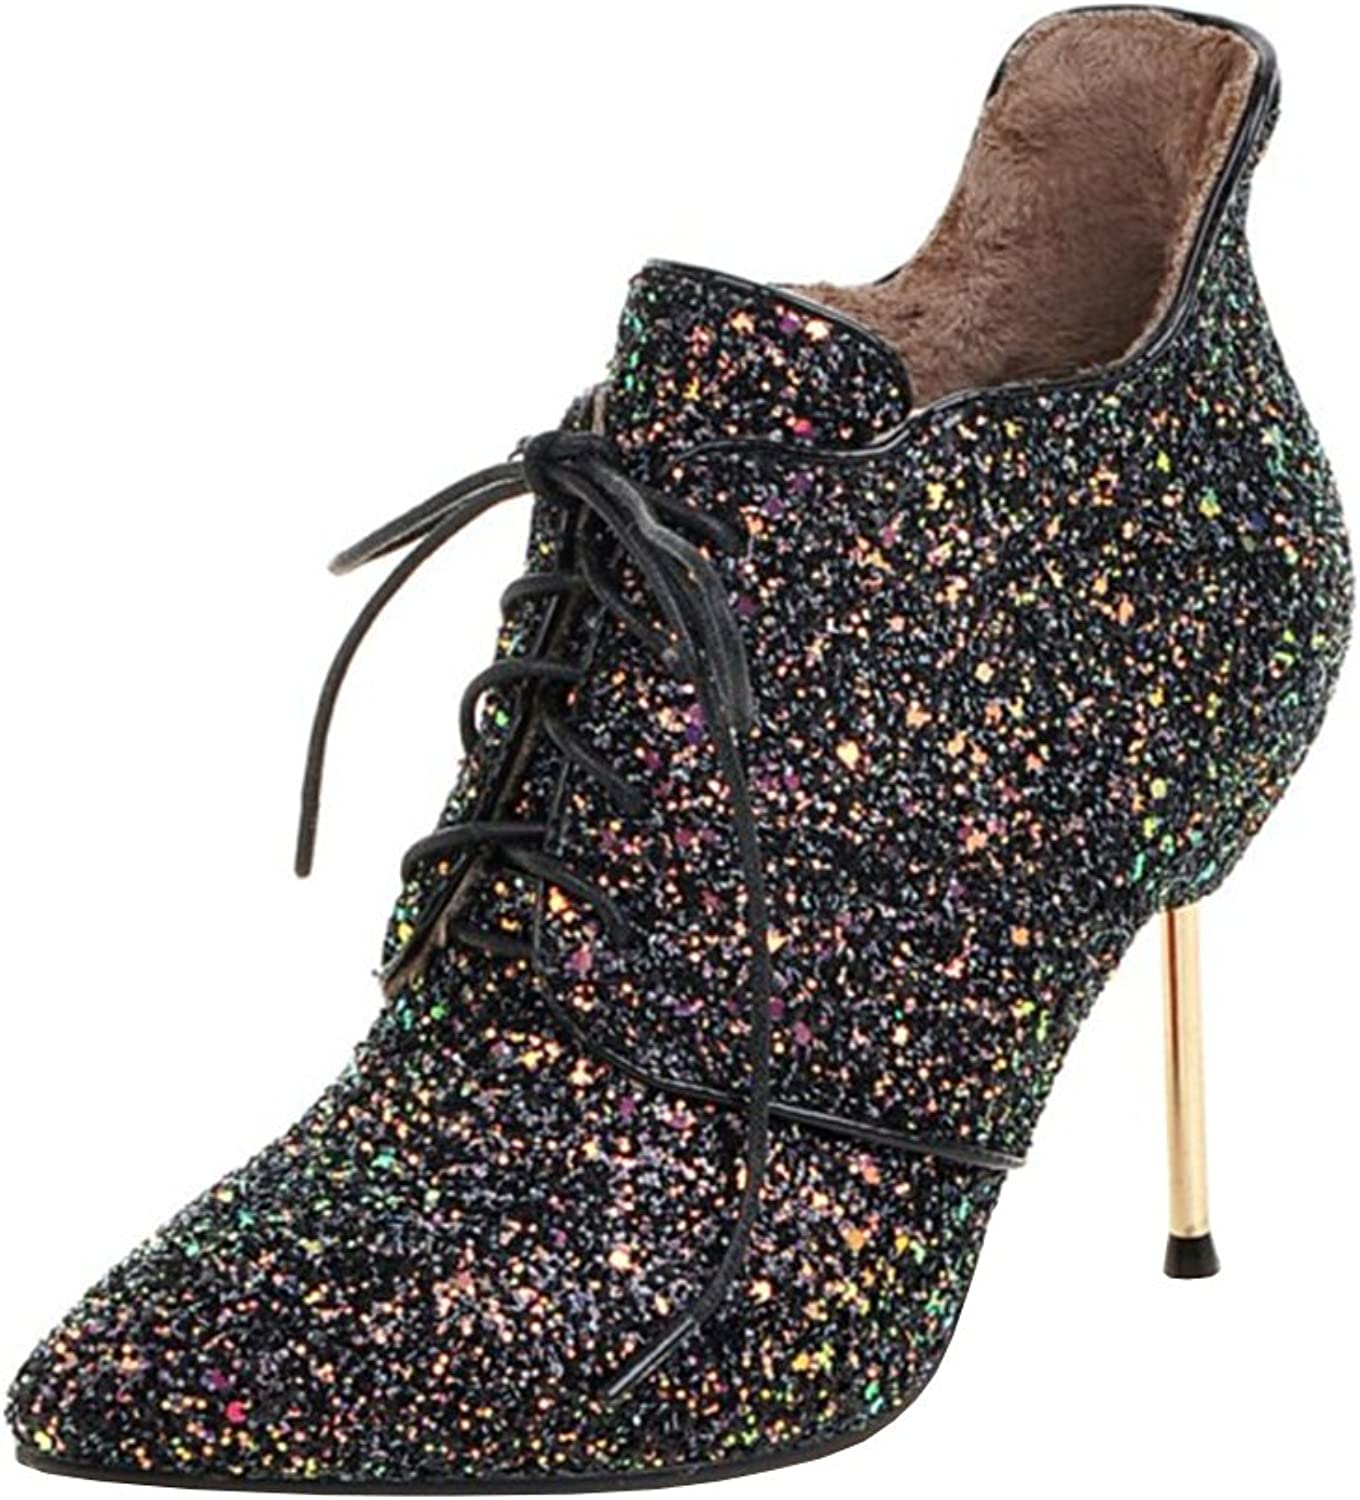 Agodor Womens Stiletto High Heels Lace up Glitter Ankle Boots with Zip Pointed Toe Modern Autumn Winter shoes